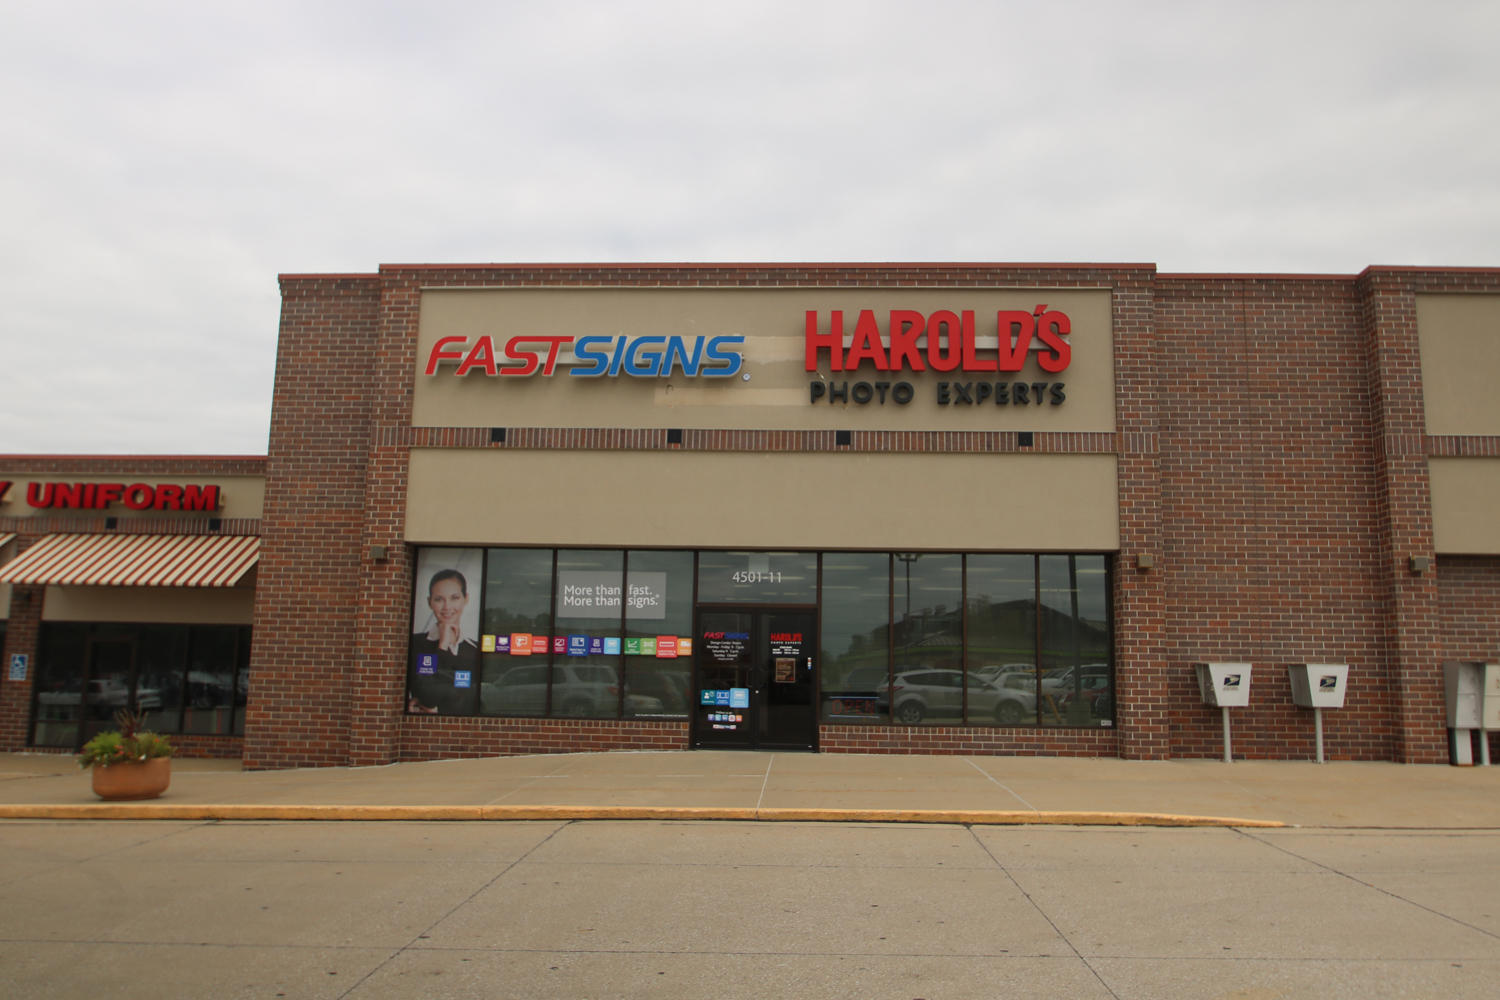 Harold 39 s photo experts in sioux city ia 51106 for Craft stores in sioux city iowa